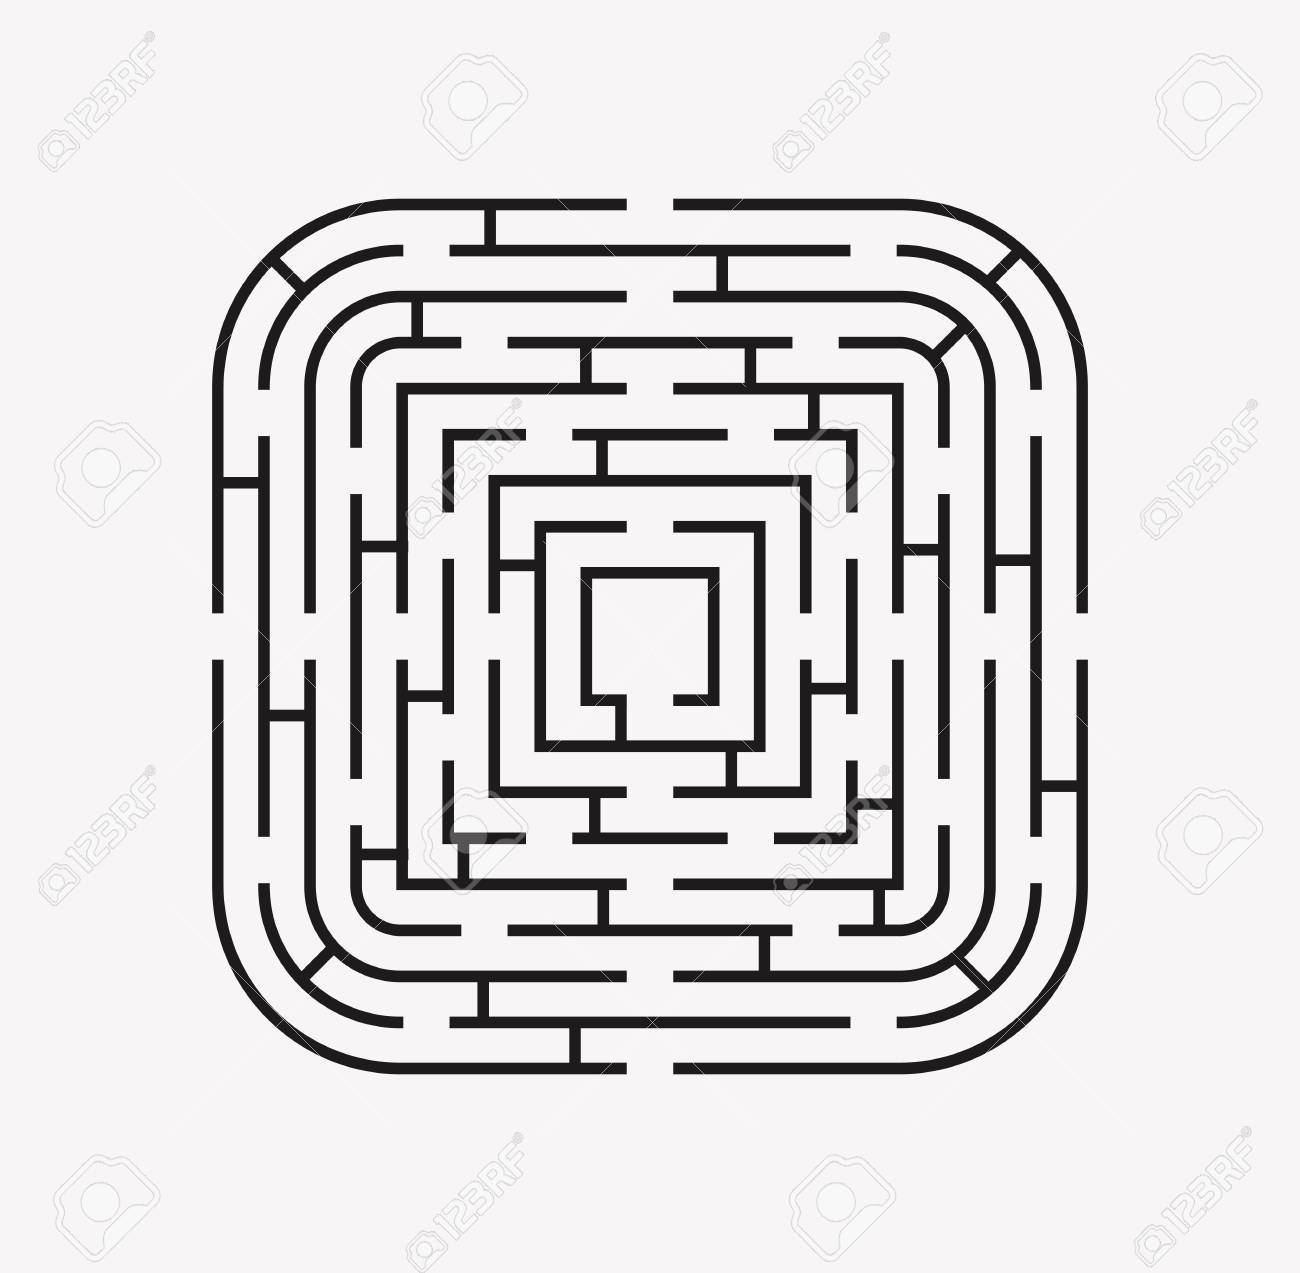 Square With Rounded Corners Maze Puzzle Find The Way Black On